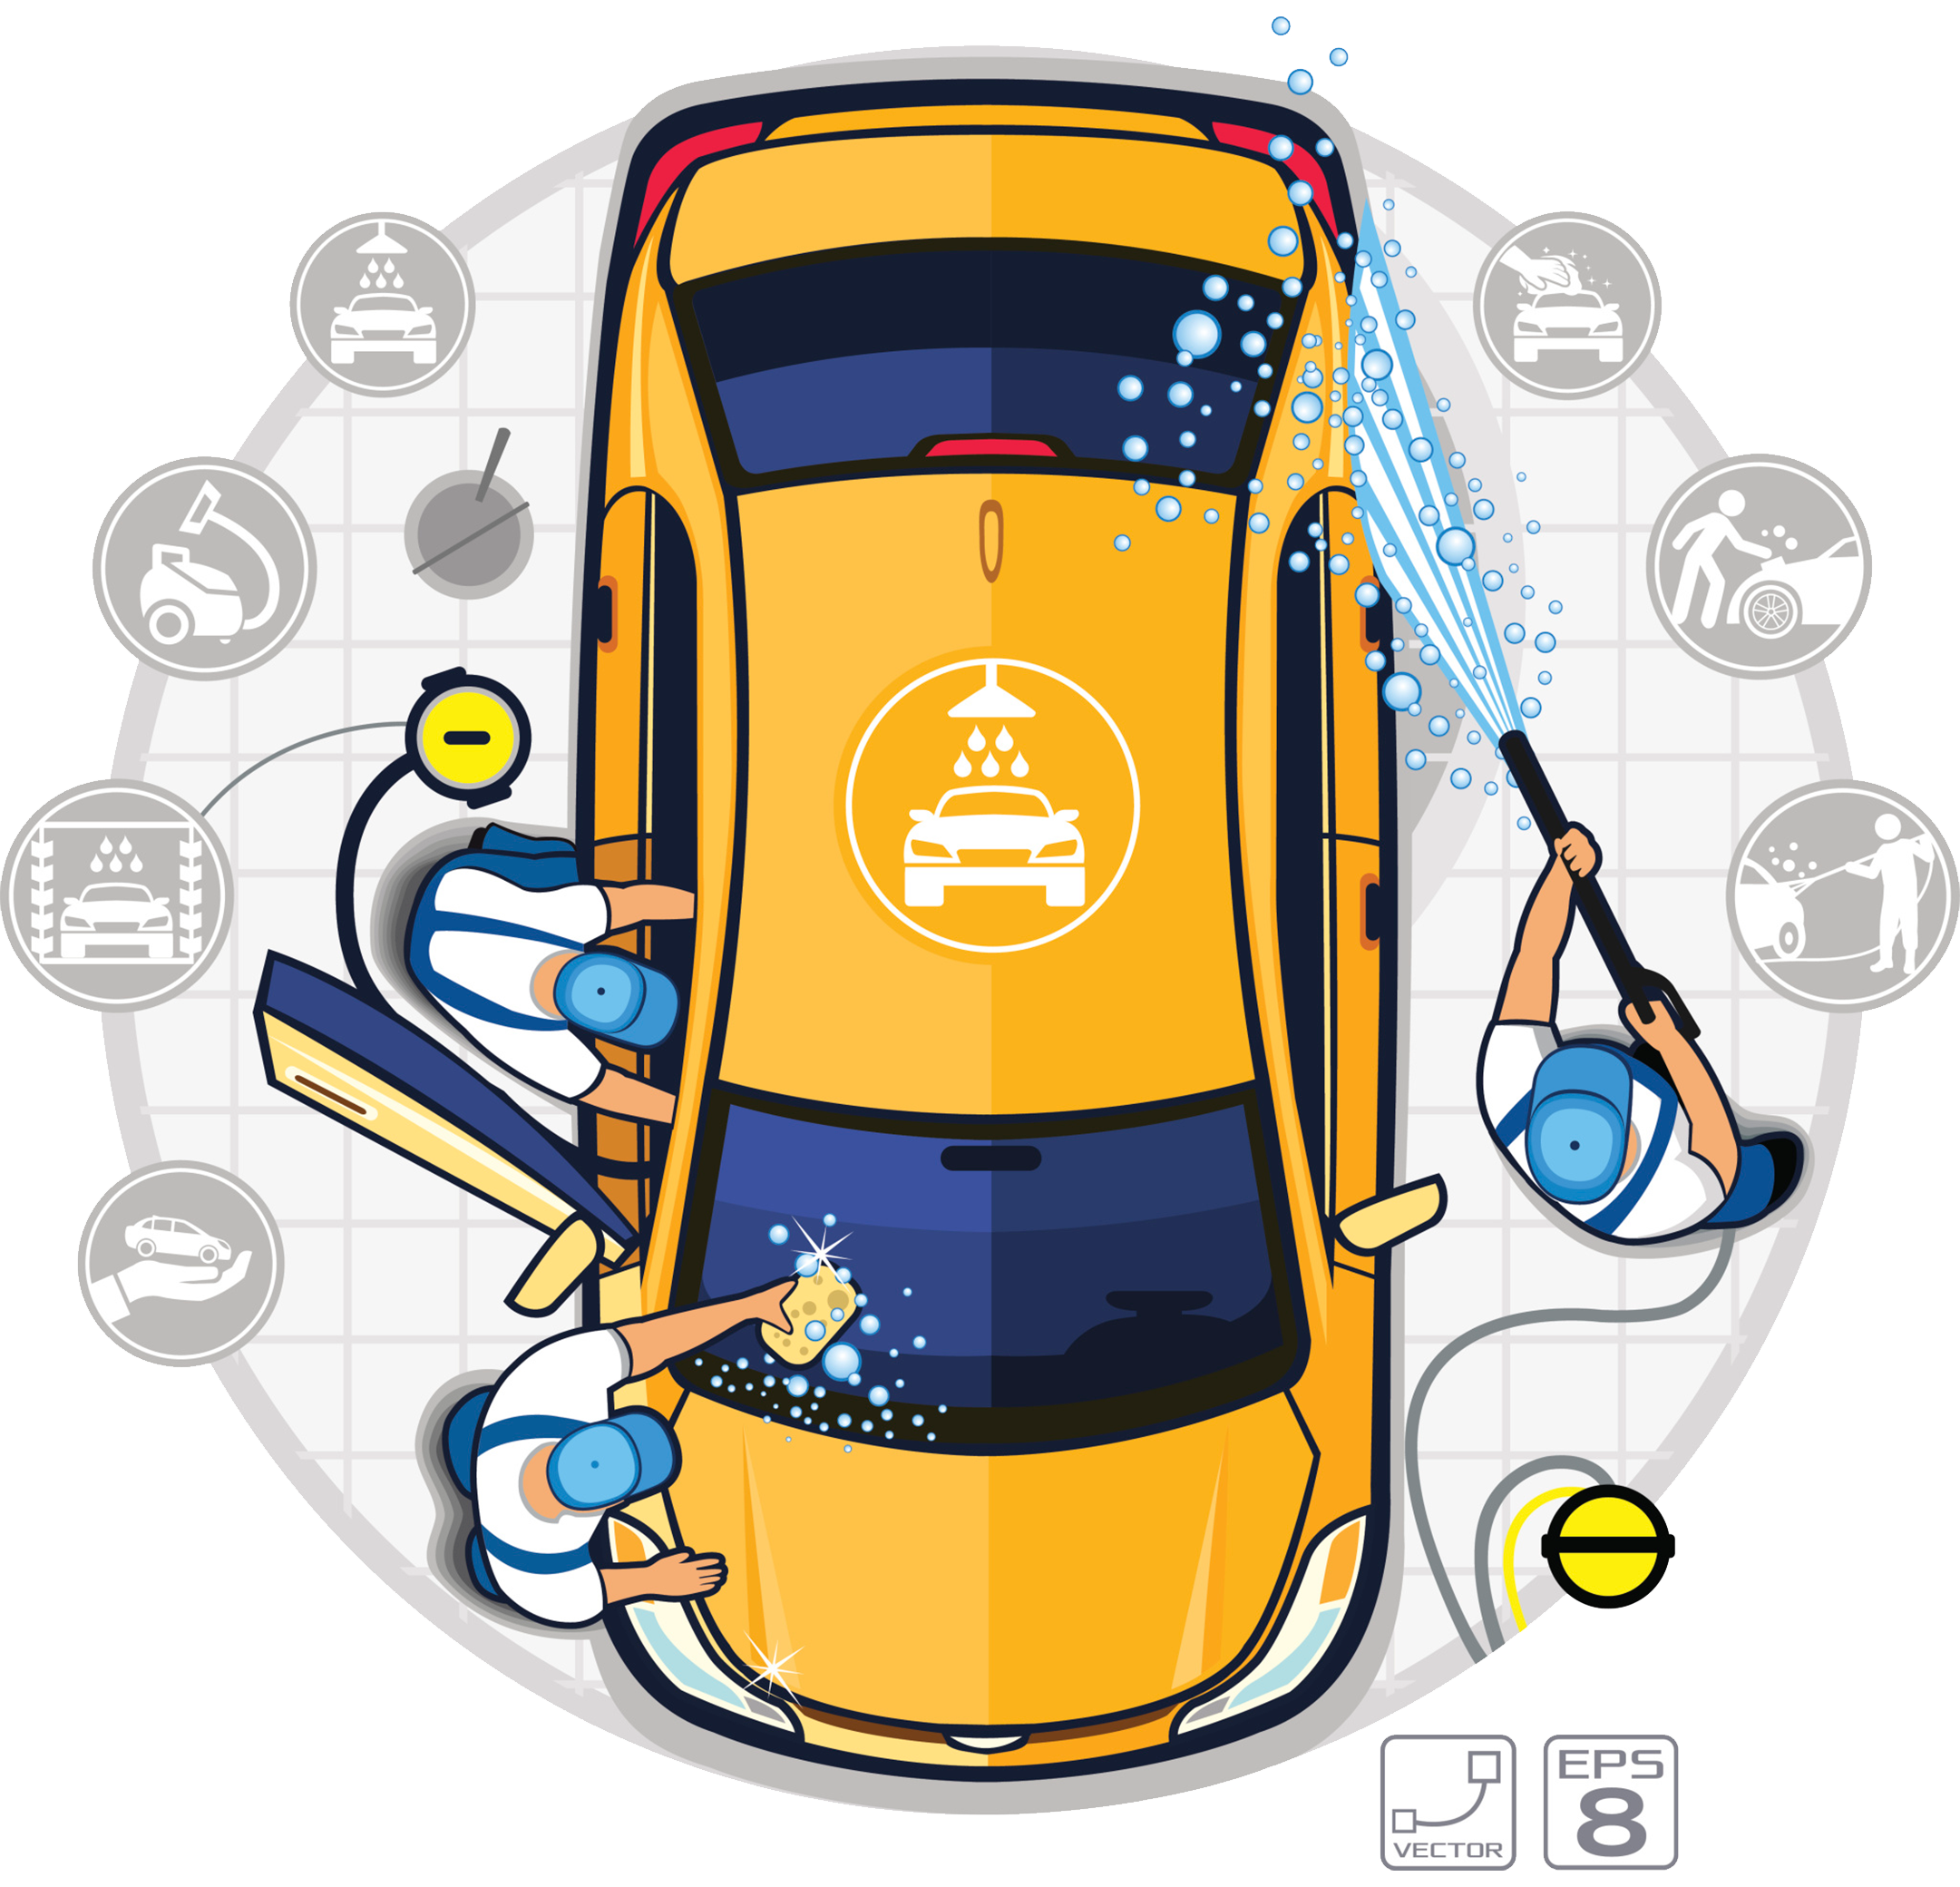 Car wash clipart free download picture freeuse download Car wash Auto detailing Illustration - Professional car wash shop ... picture freeuse download